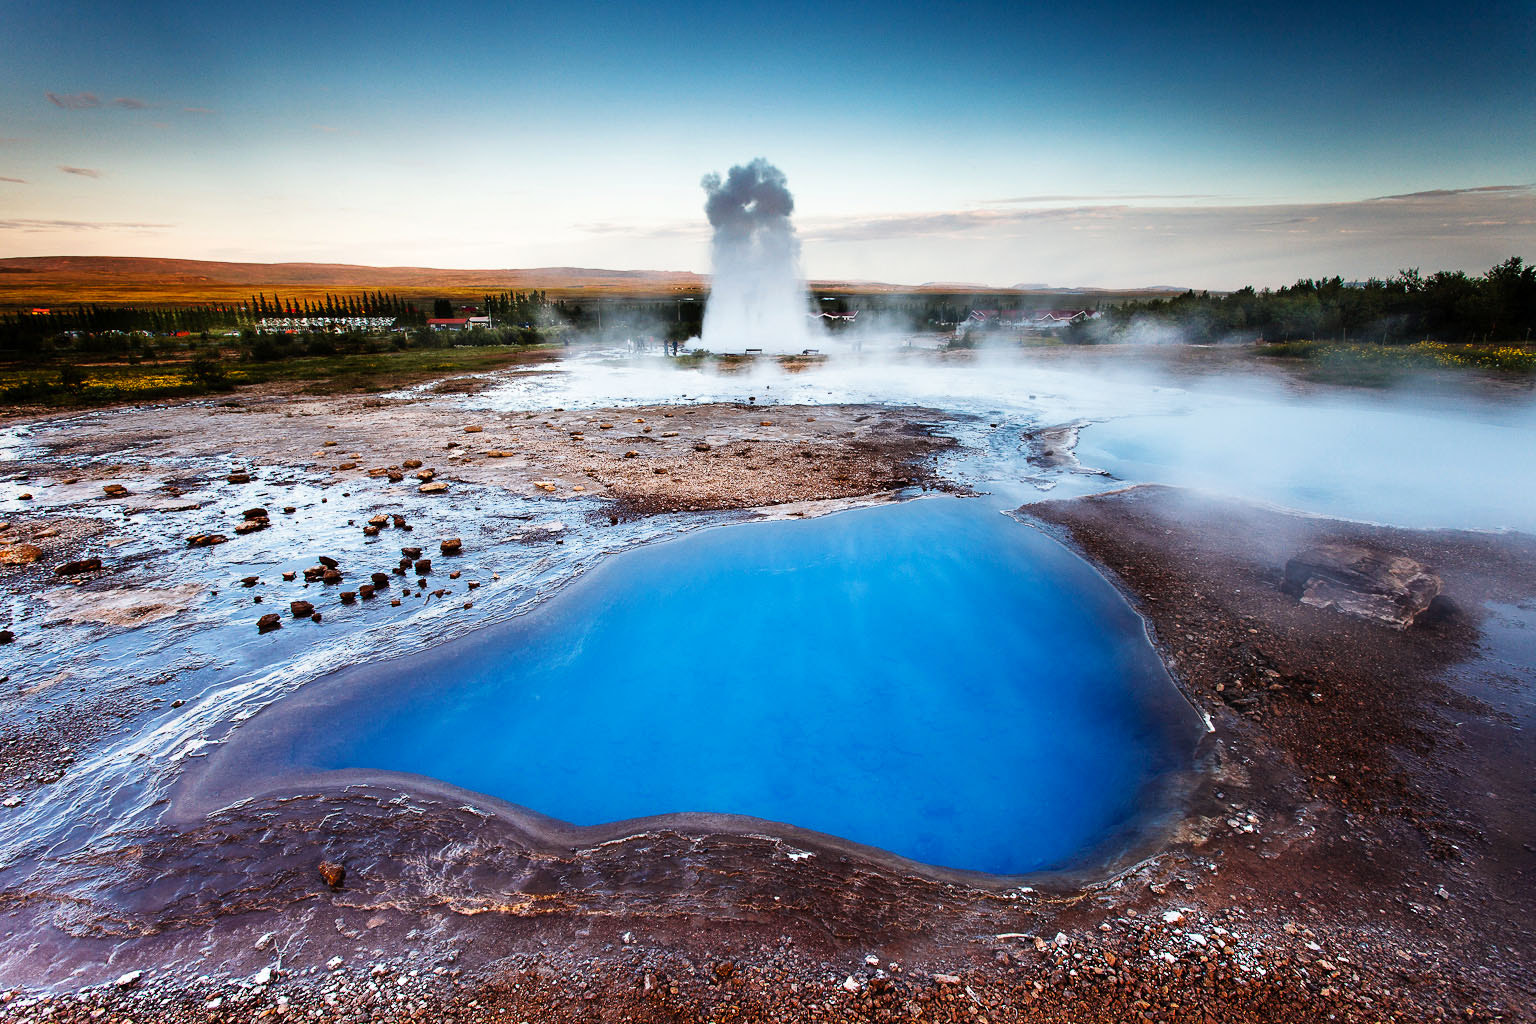 Photograph At Geysir, Geothormal site, ICELAND by Páll Guðjónsson on 500px